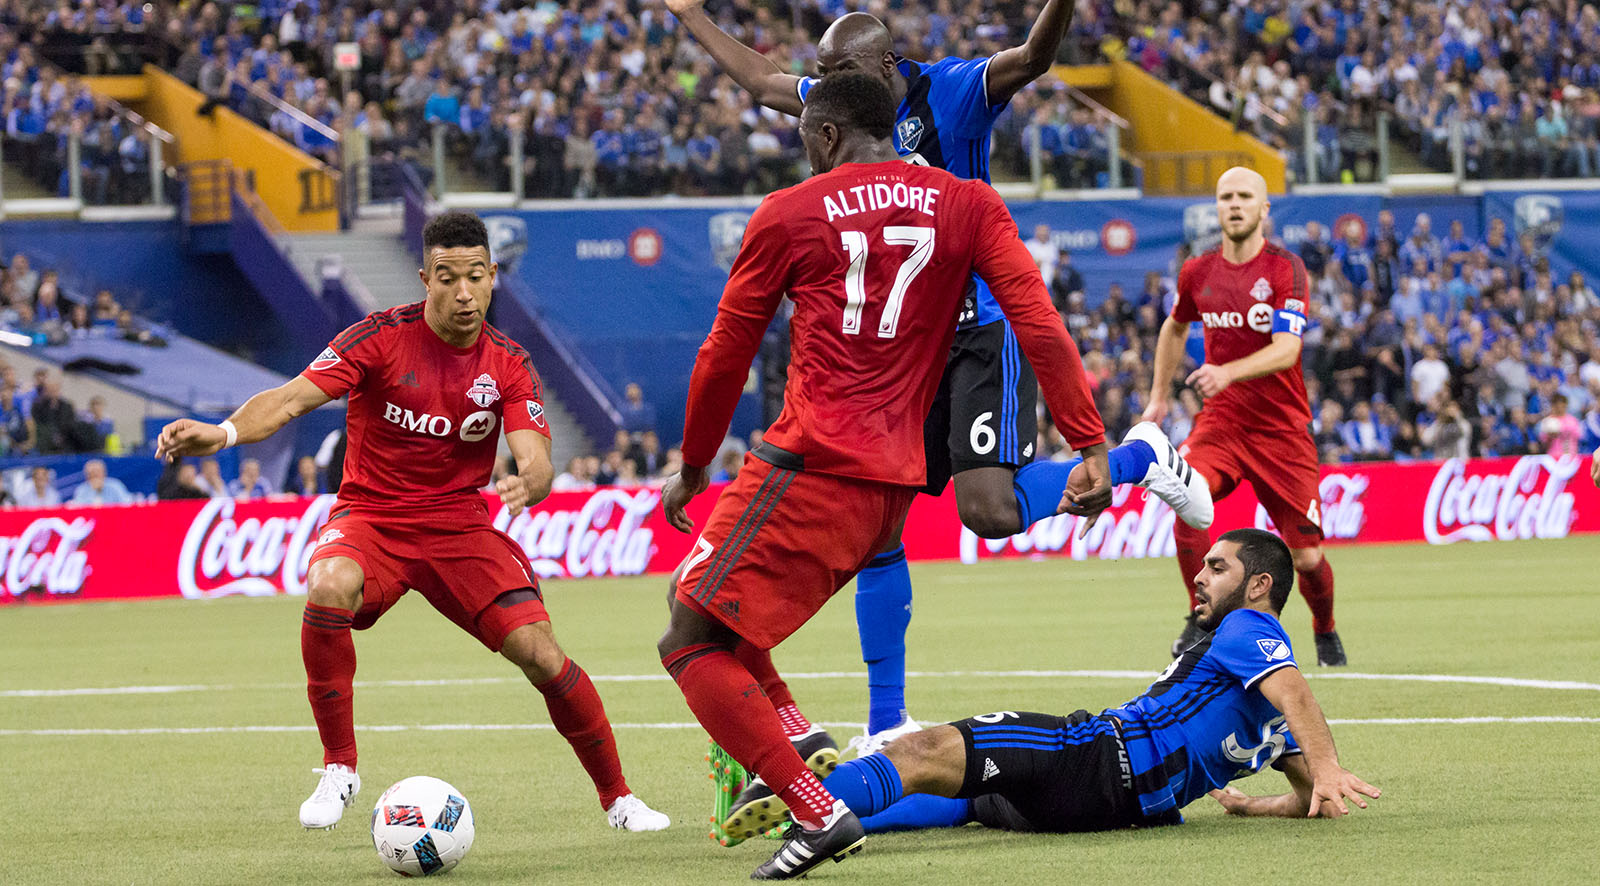 Montreal Impact and Toronto FC players scramble after the ball after a sliding tackle.